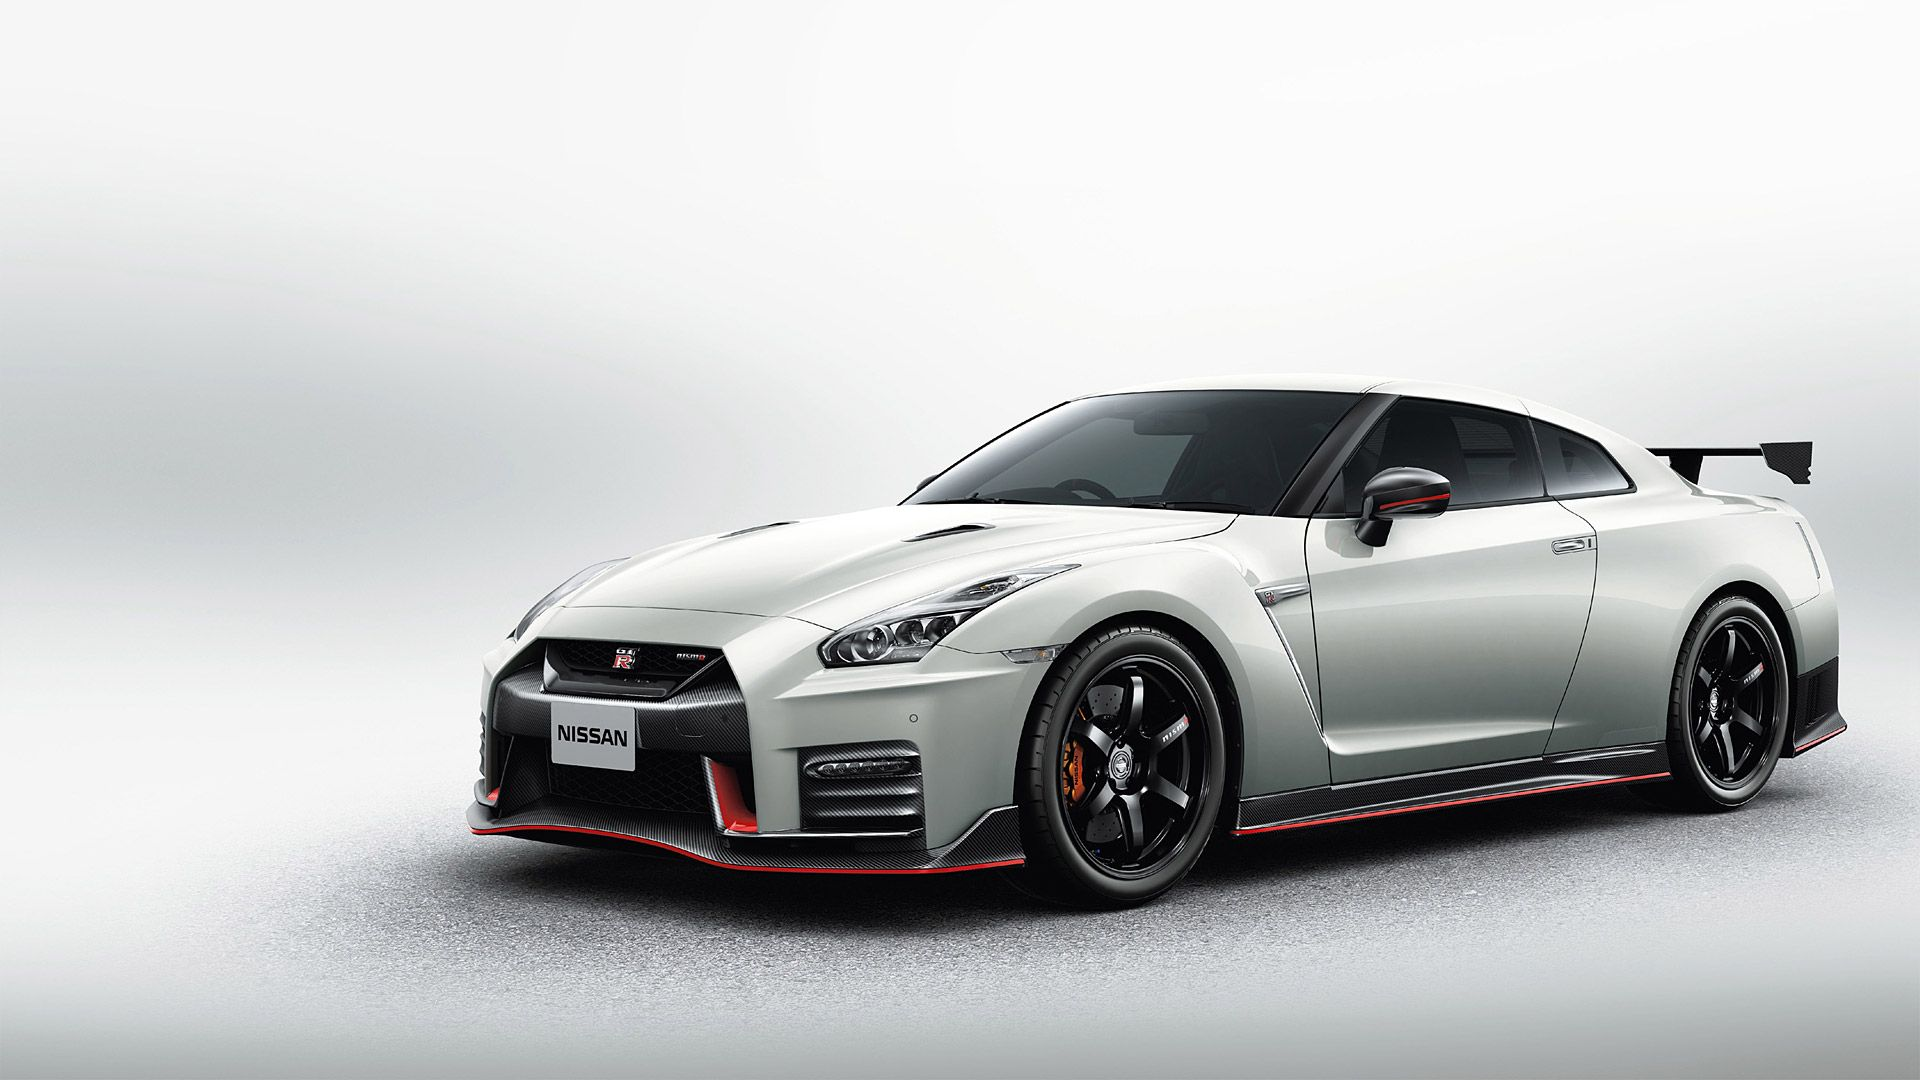 Nissan Gtr Nismo Wallpapers High Definition Nissan Gtr Nismo Gtr Nismo Nissan Gtr